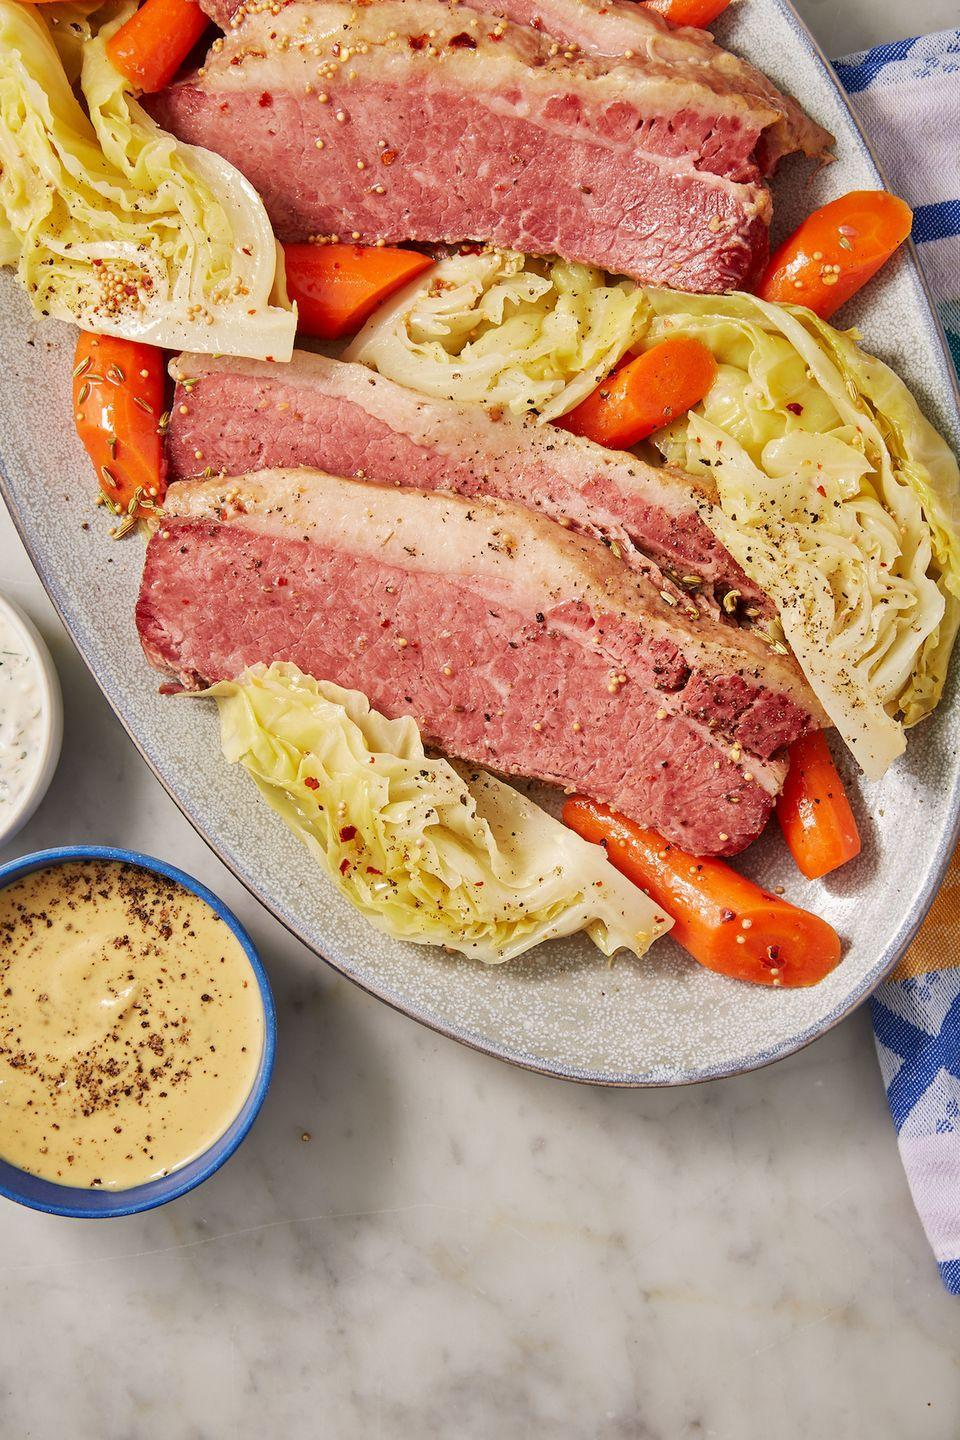 """<p>Just like the traditional — but made slightly healthier!</p><p>Get the recipe from <a href=""""https://www.delish.com/cooking/recipe-ideas/a30912758/keto-corned-beef-and-cabbage/"""" rel=""""nofollow noopener"""" target=""""_blank"""" data-ylk=""""slk:Delish."""" class=""""link rapid-noclick-resp"""">Delish. </a></p>"""